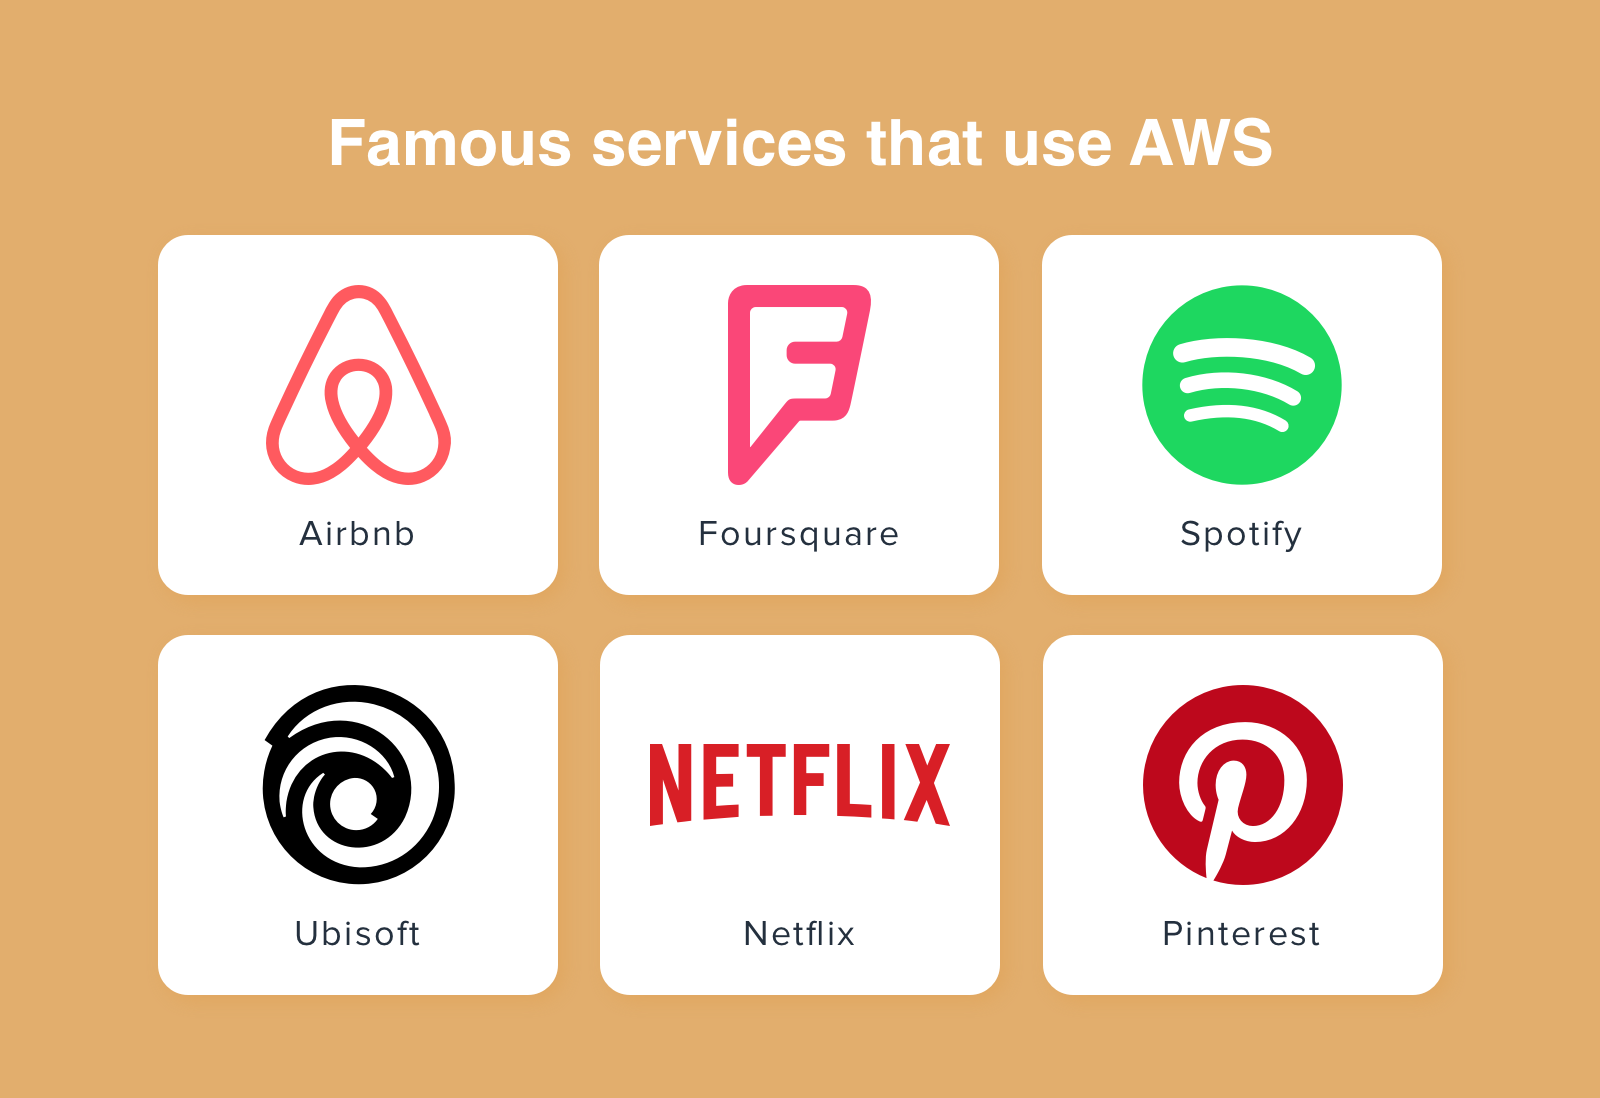 Famous services that use AWS